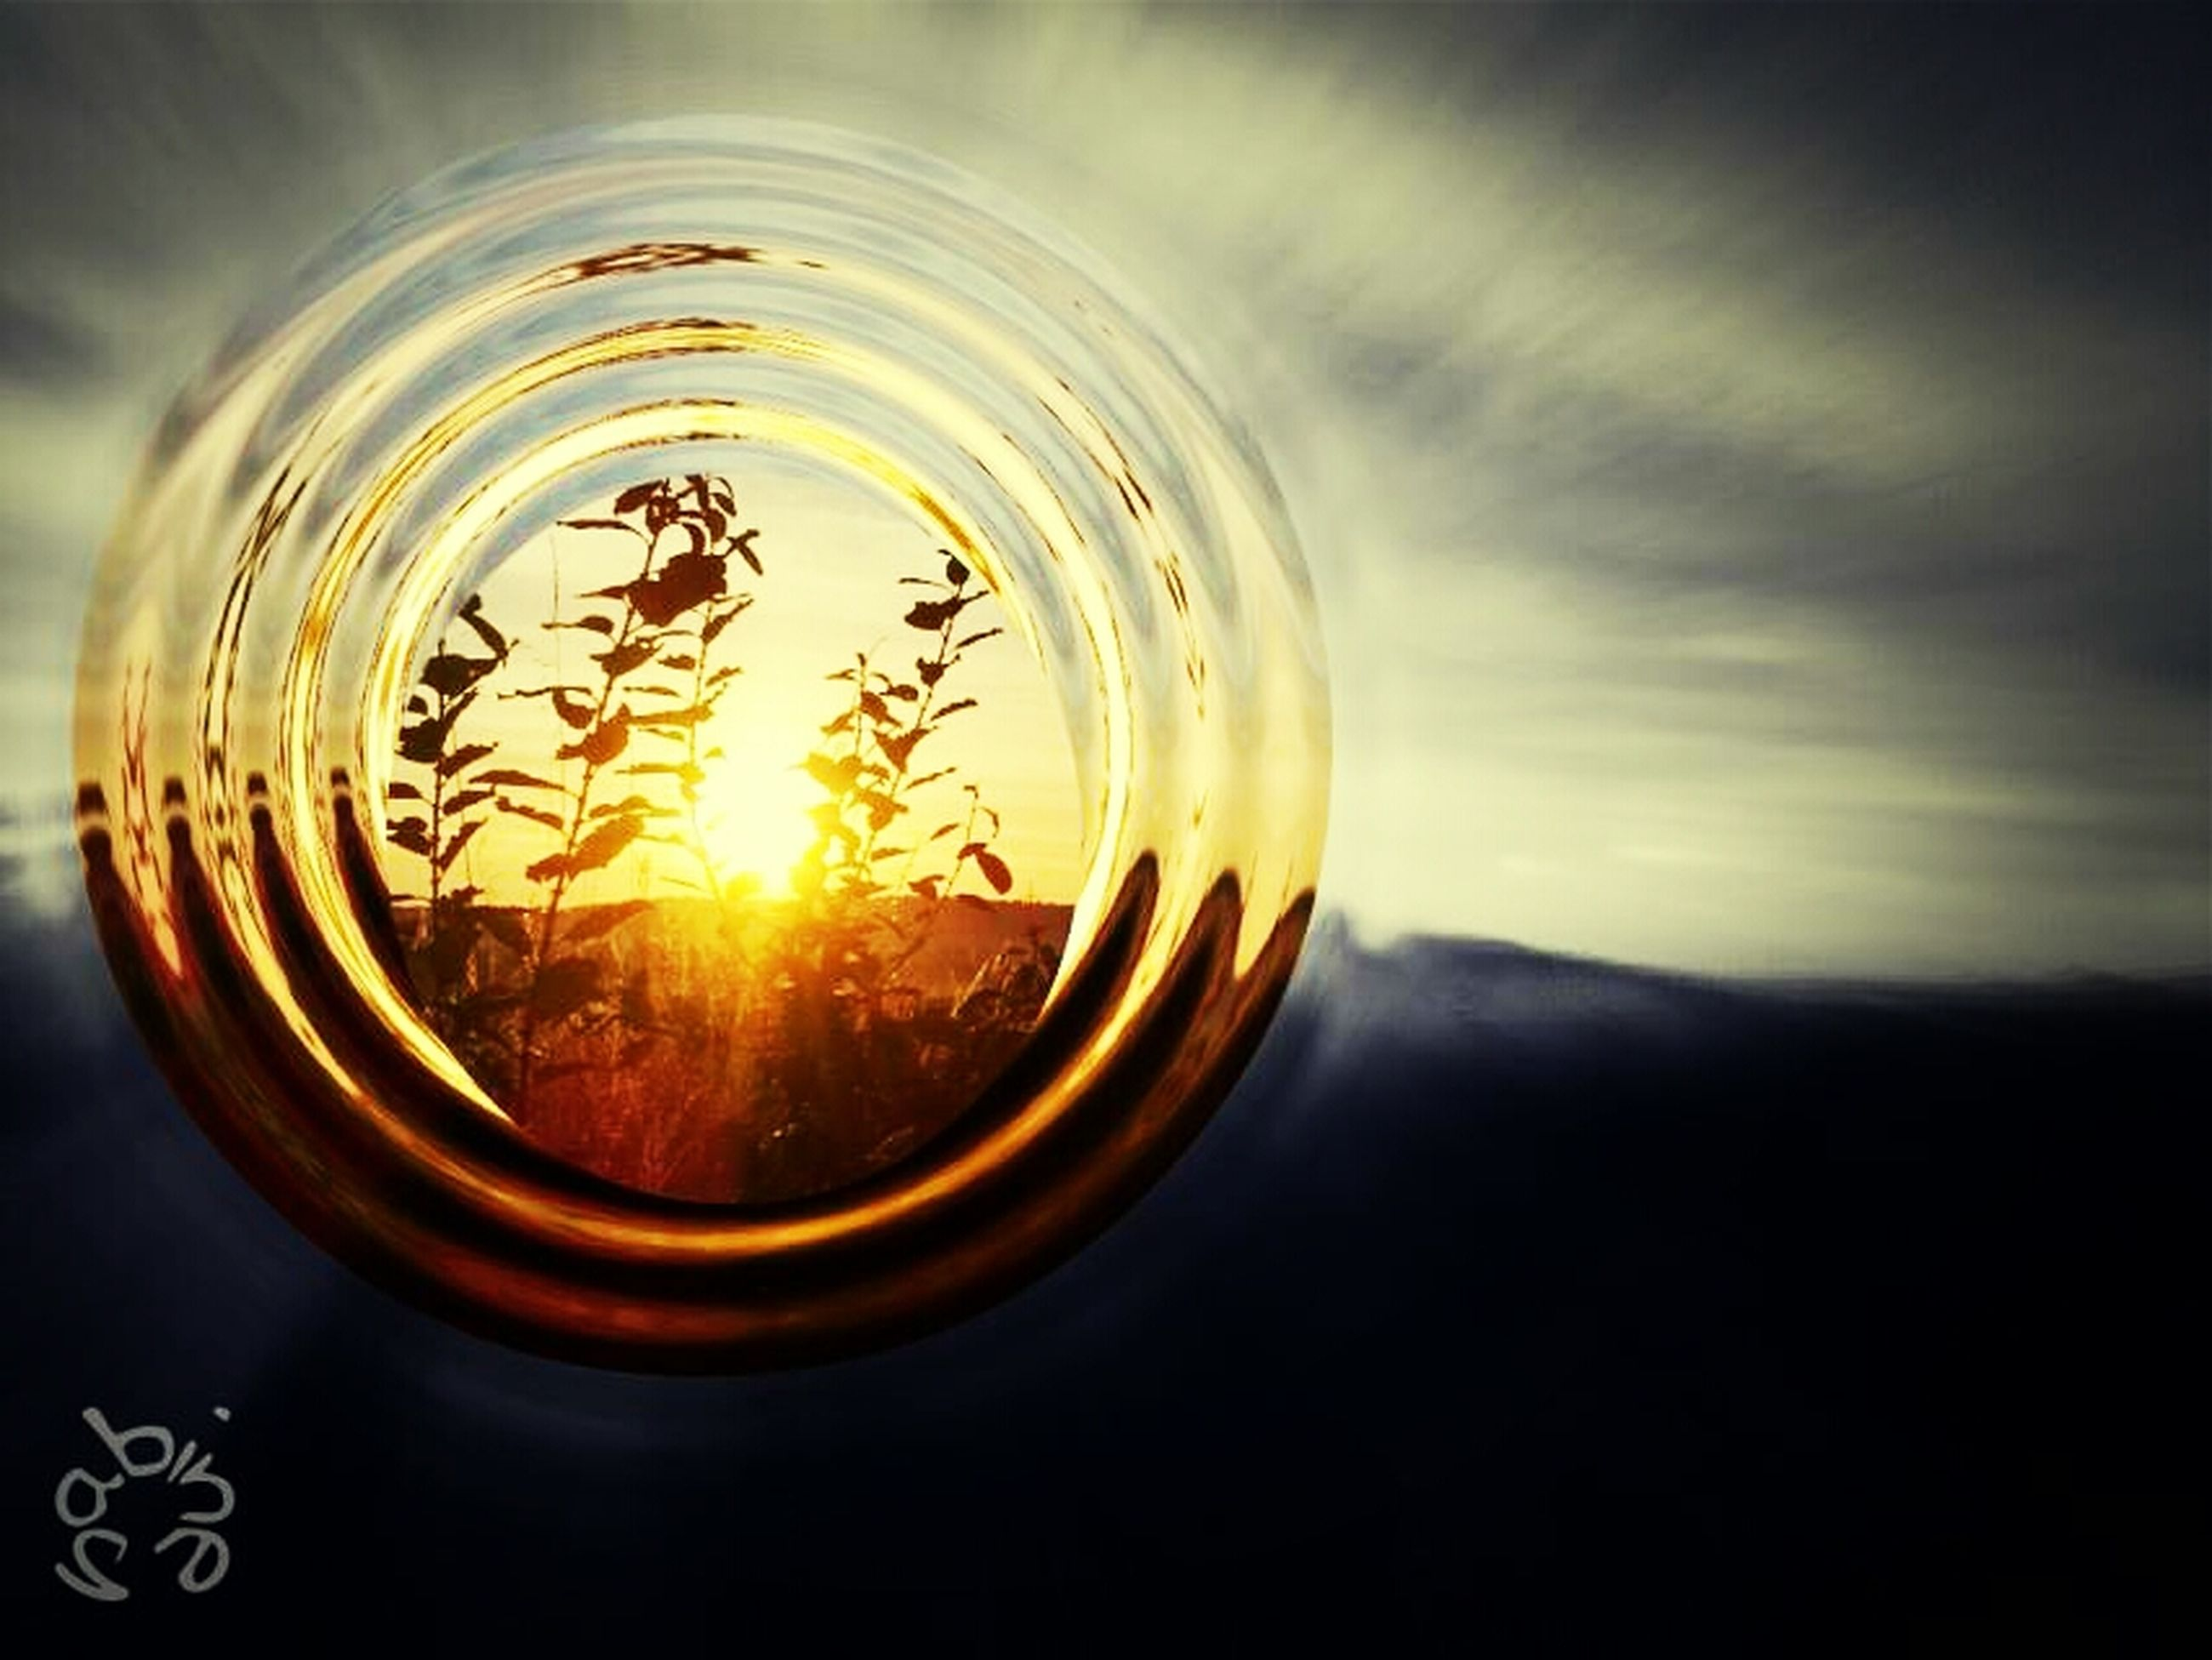 sunset, sun, close-up, orange color, reflection, transparent, glass - material, circle, sky, glowing, indoors, no people, nature, scenics, beauty in nature, tranquility, focus on foreground, sunlight, silhouette, tranquil scene